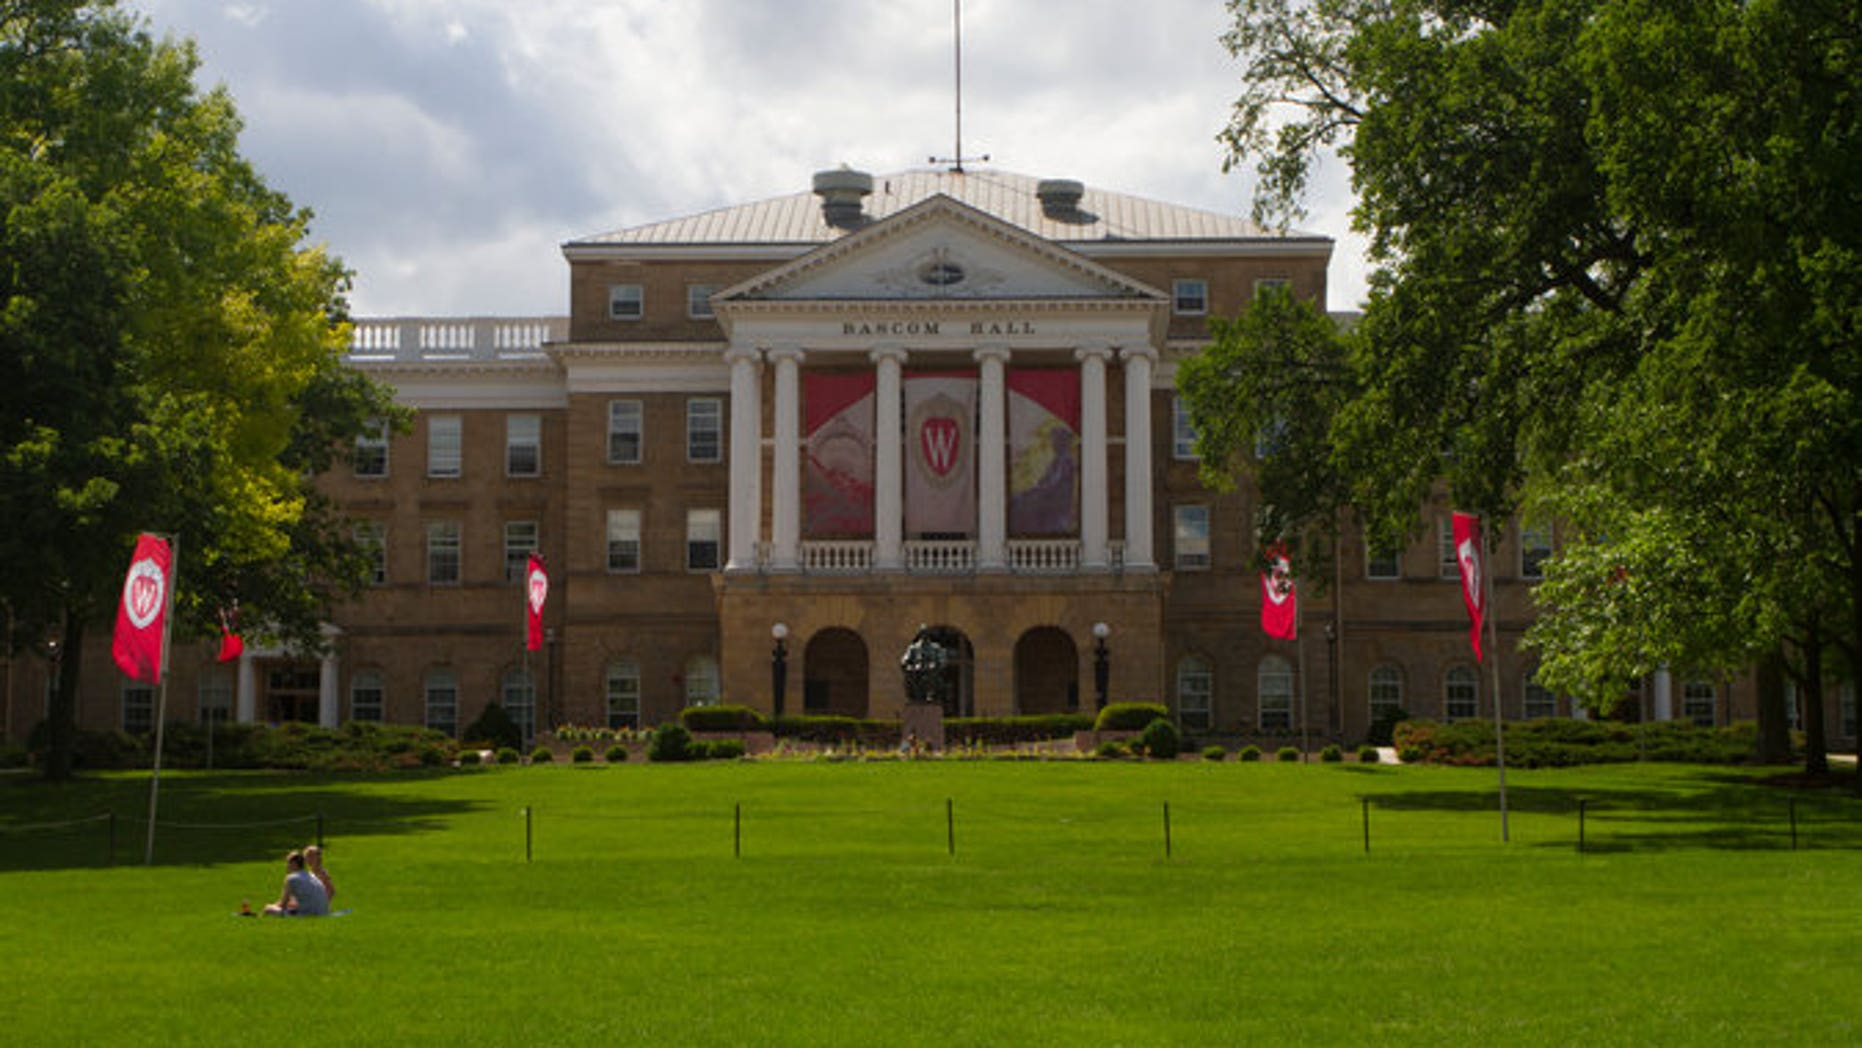 The campus of the University of Wisconsin-Madison in 2014.